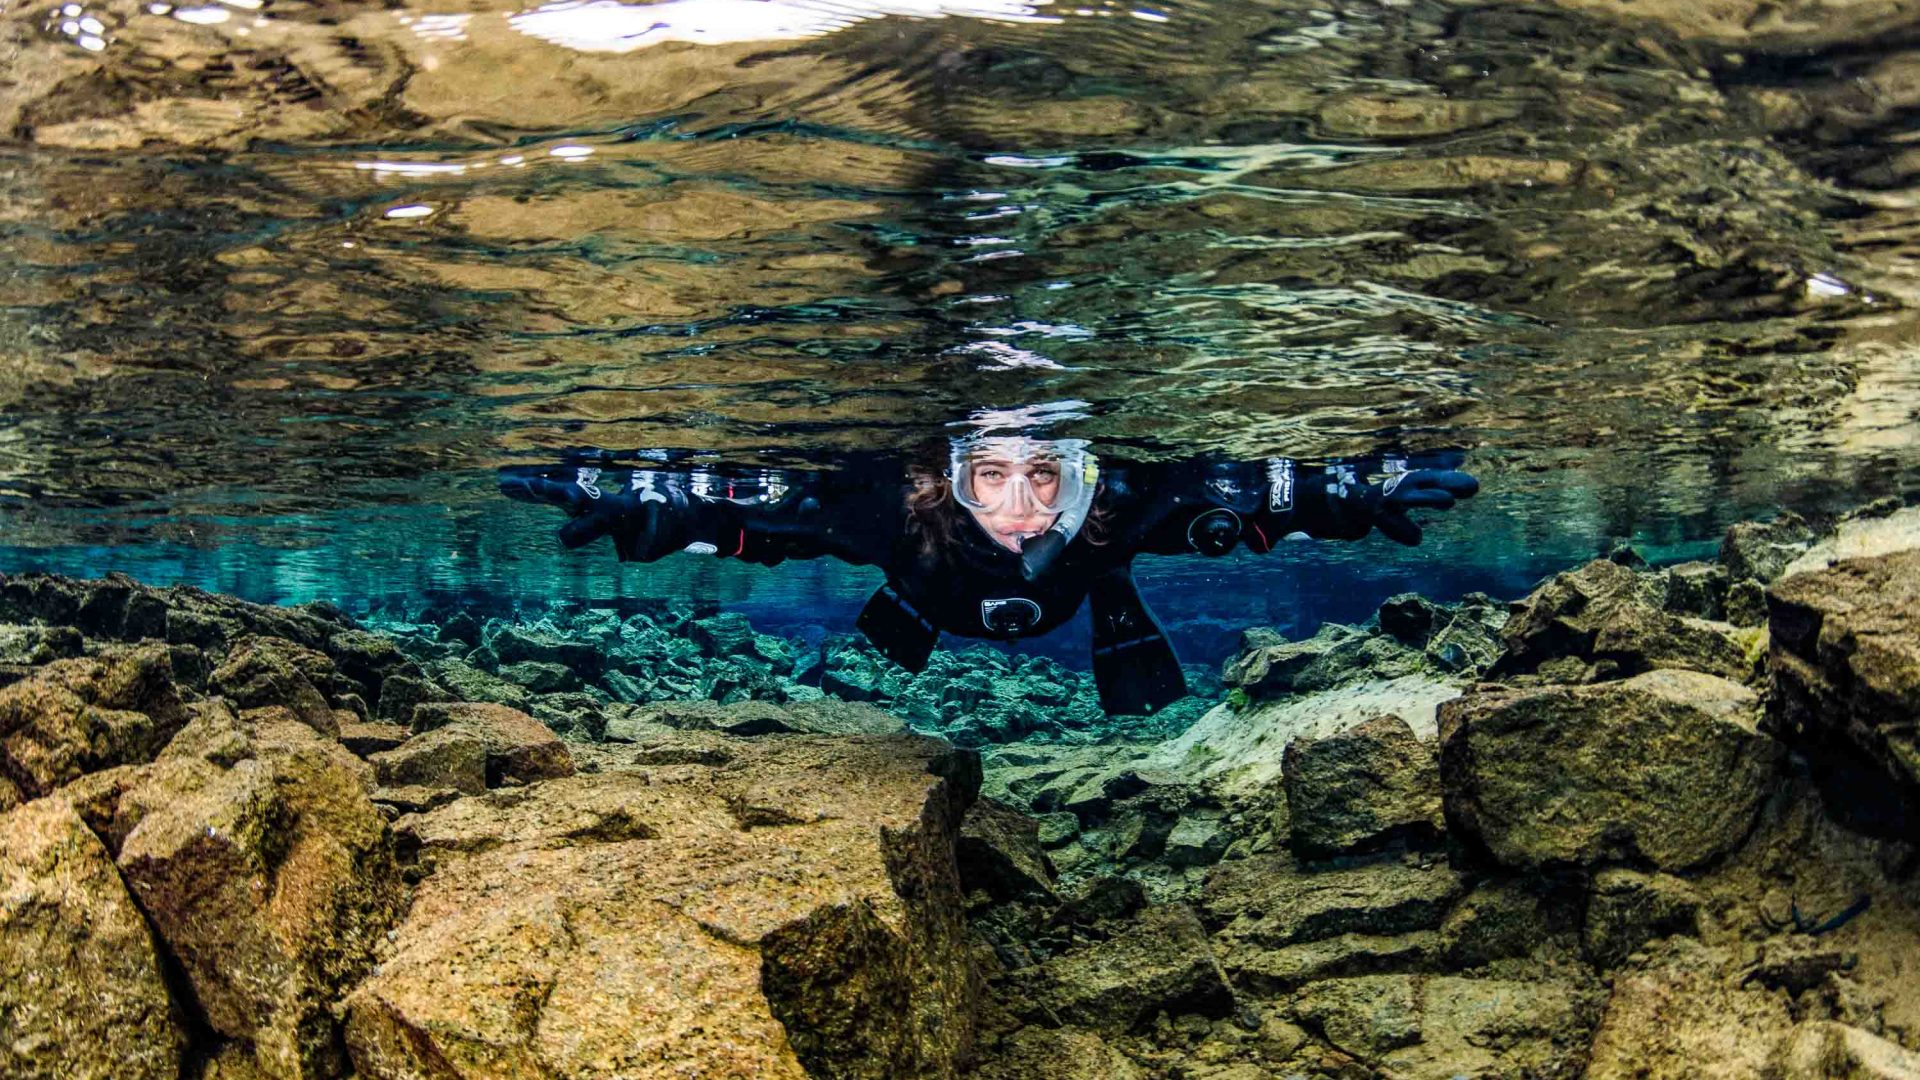 Snorkeling in Iceland's Sifra fissure between two continents.